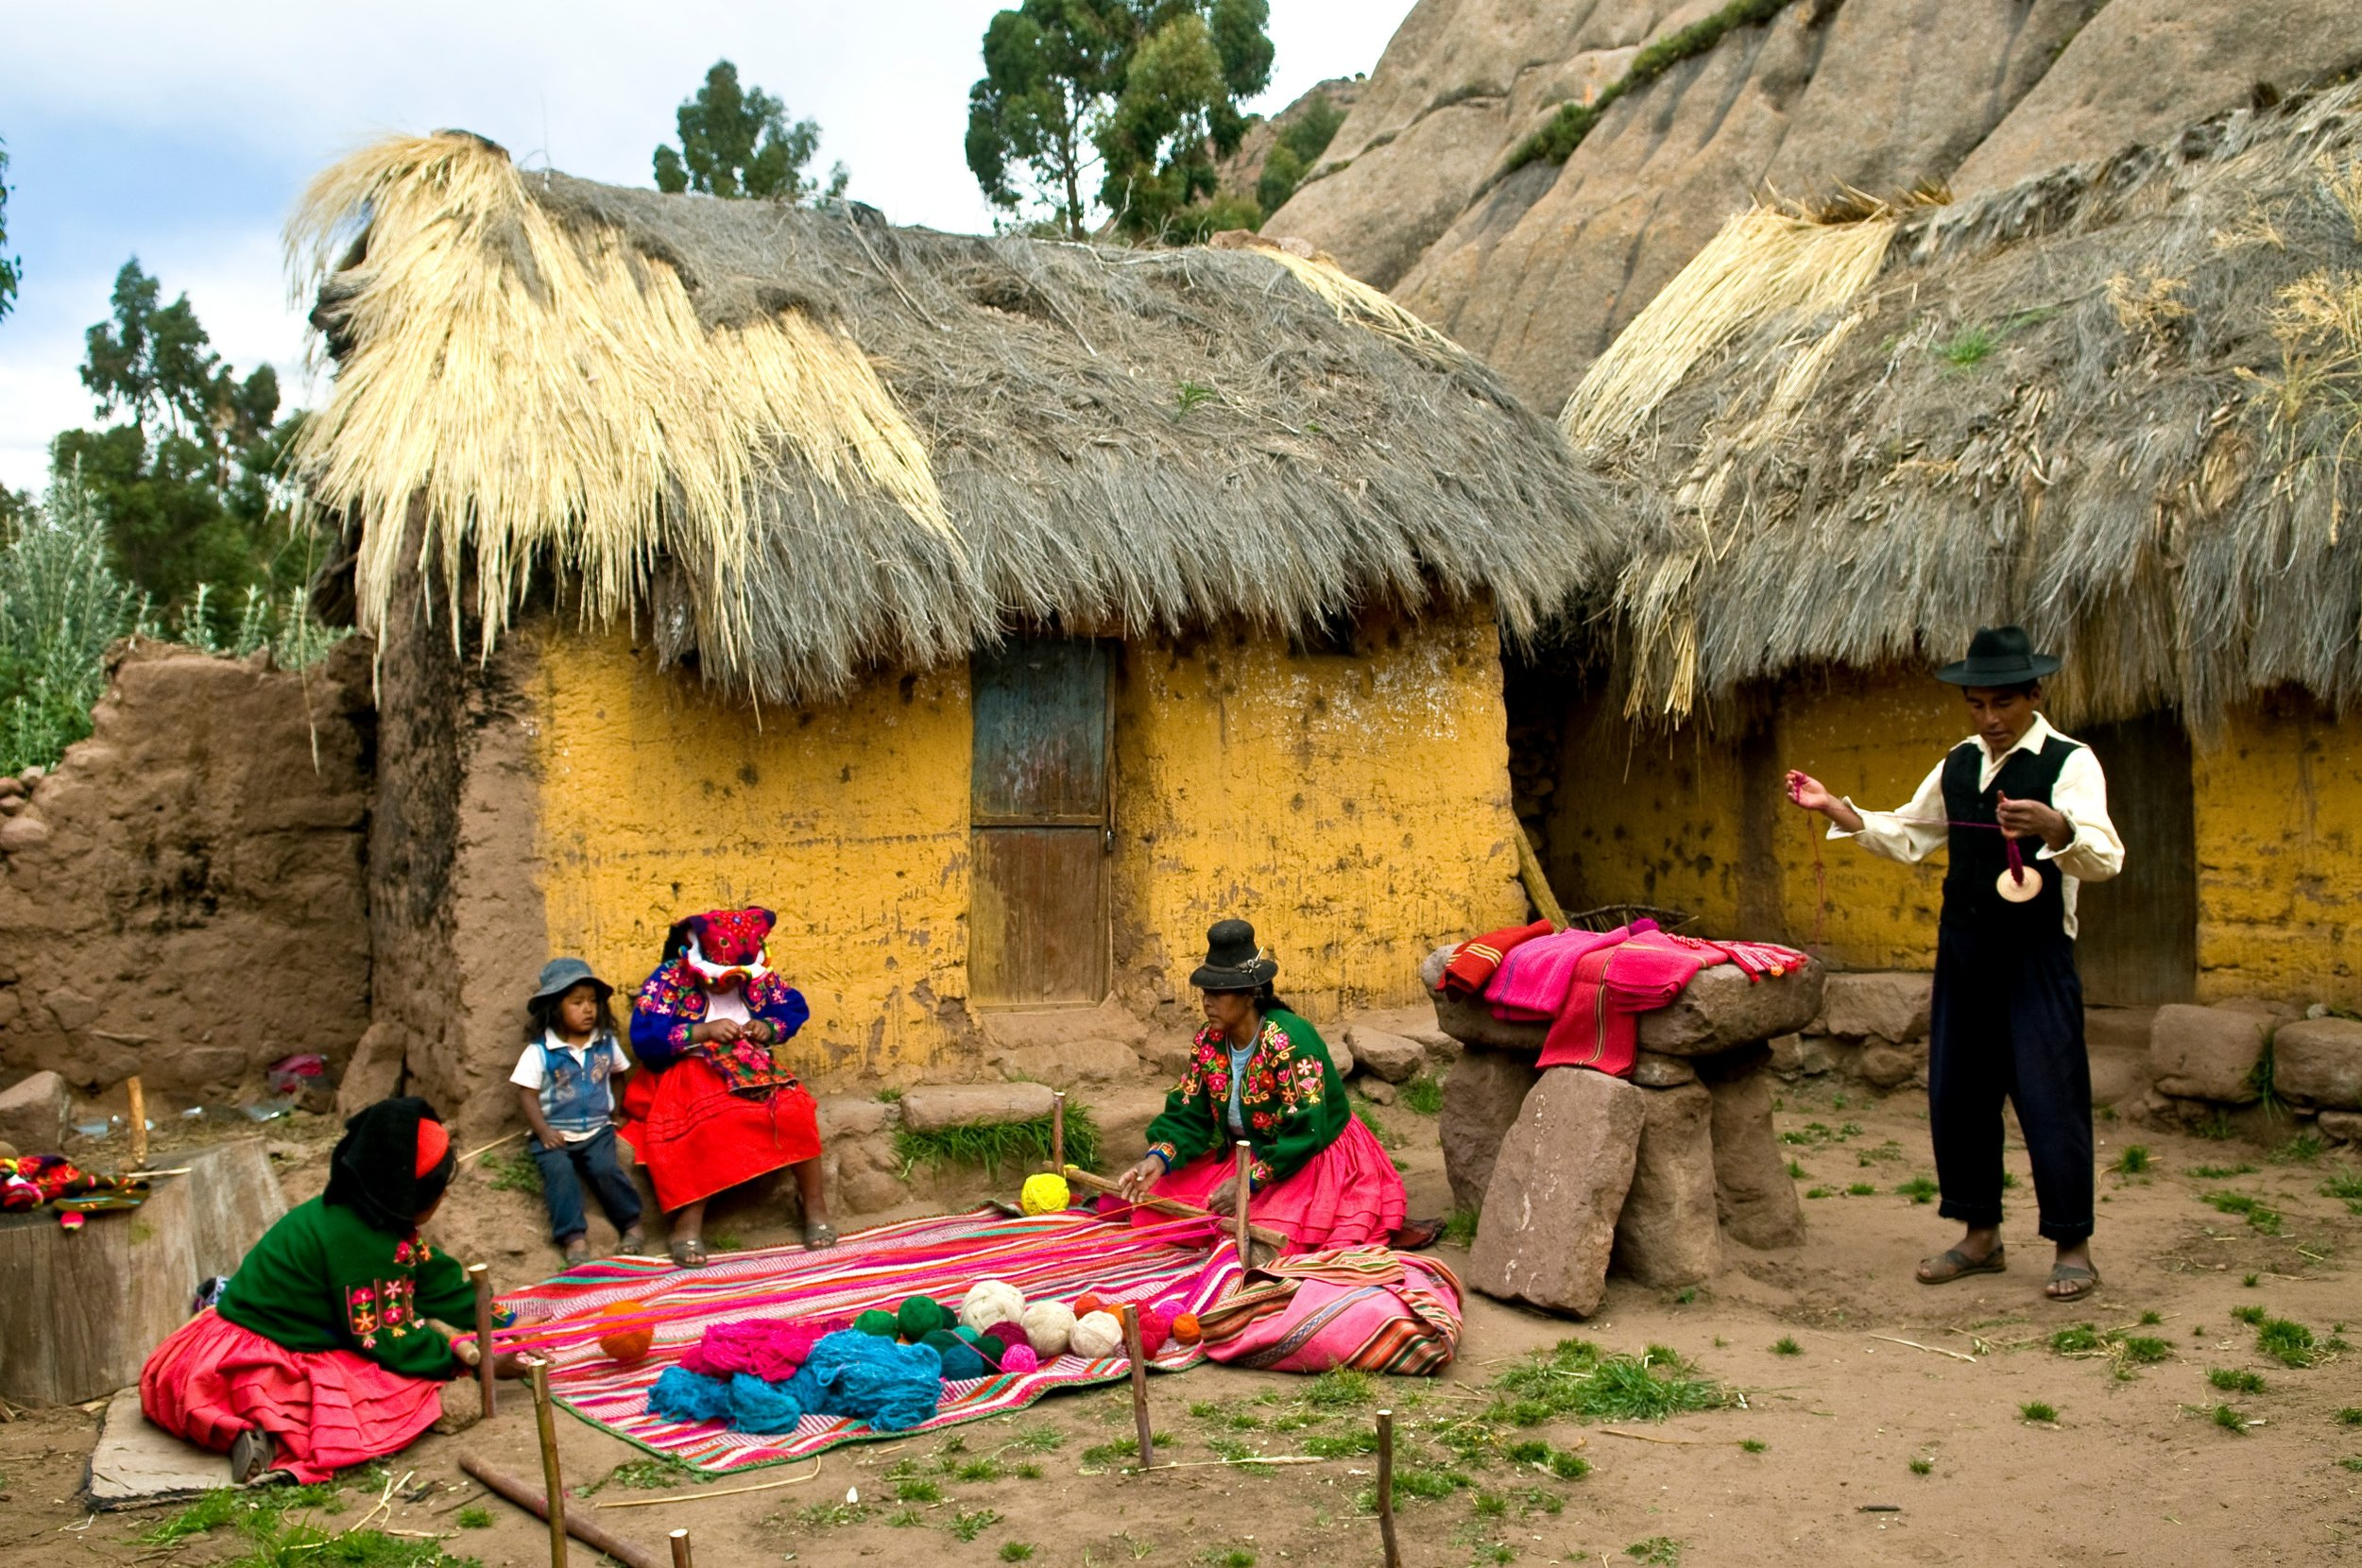 Private weaving demonstration on Amantani Island. In contrast to nearby Taquile, where men do the weaving, women are head of the communities and handle to weaving on Amantani.